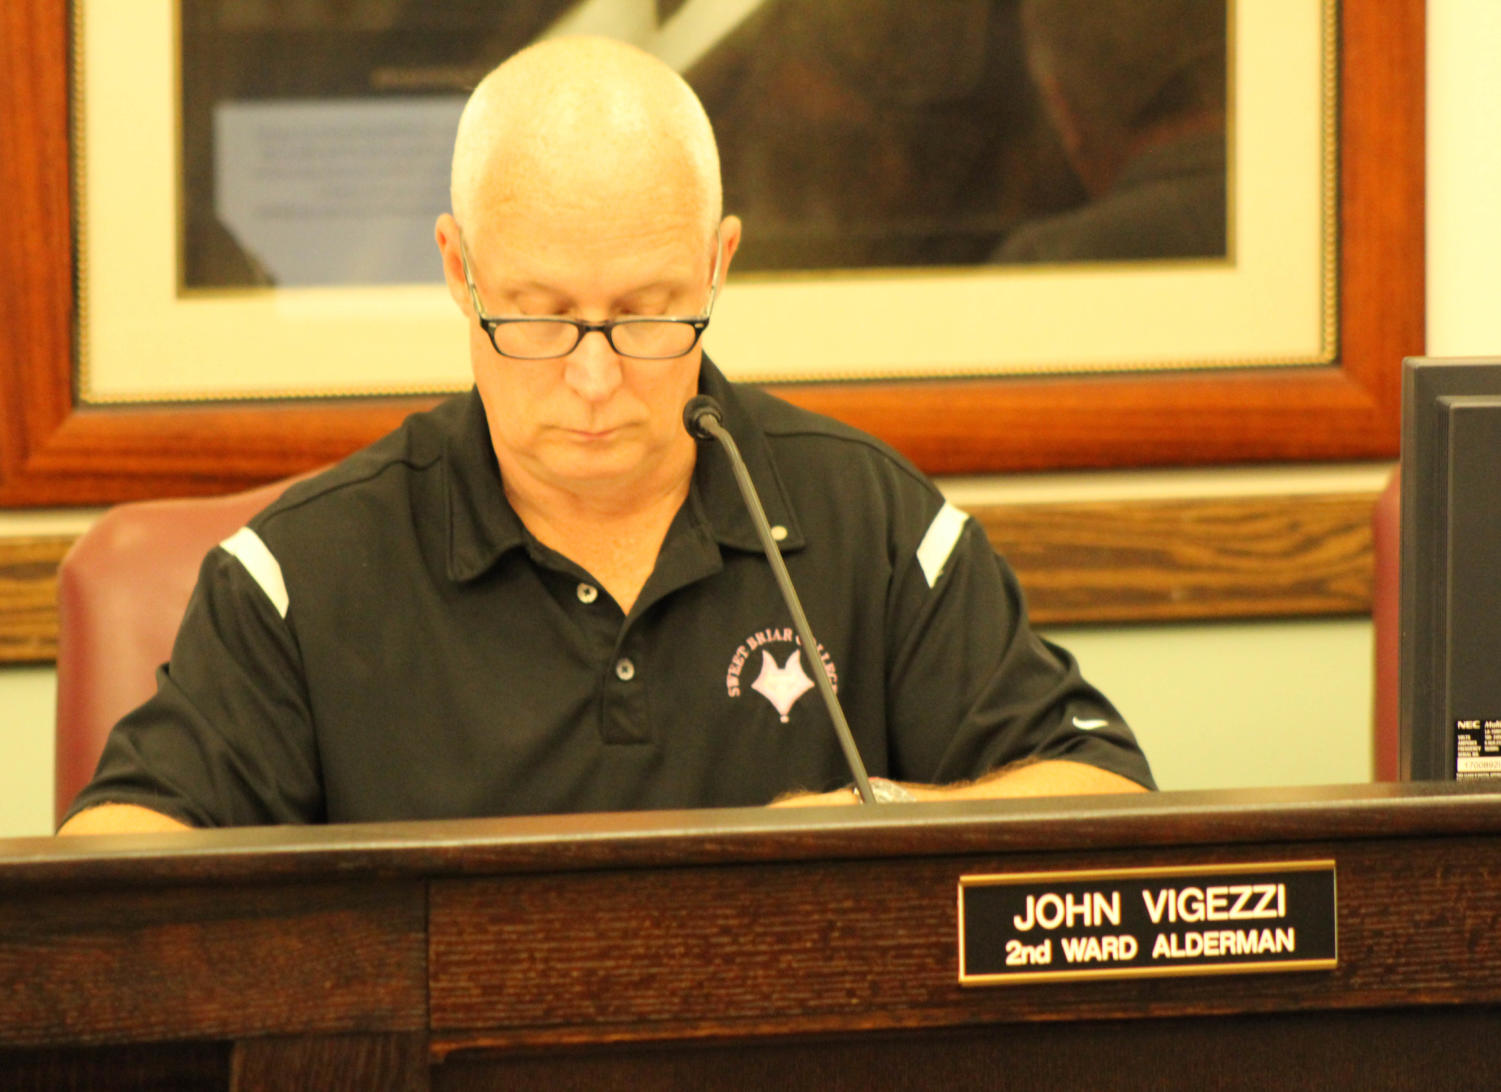 Alderman+John+Vigezzi+and+Fire+Chief+J.R.+Hyde+speak+at+Monday%27s+city+council+meeting.